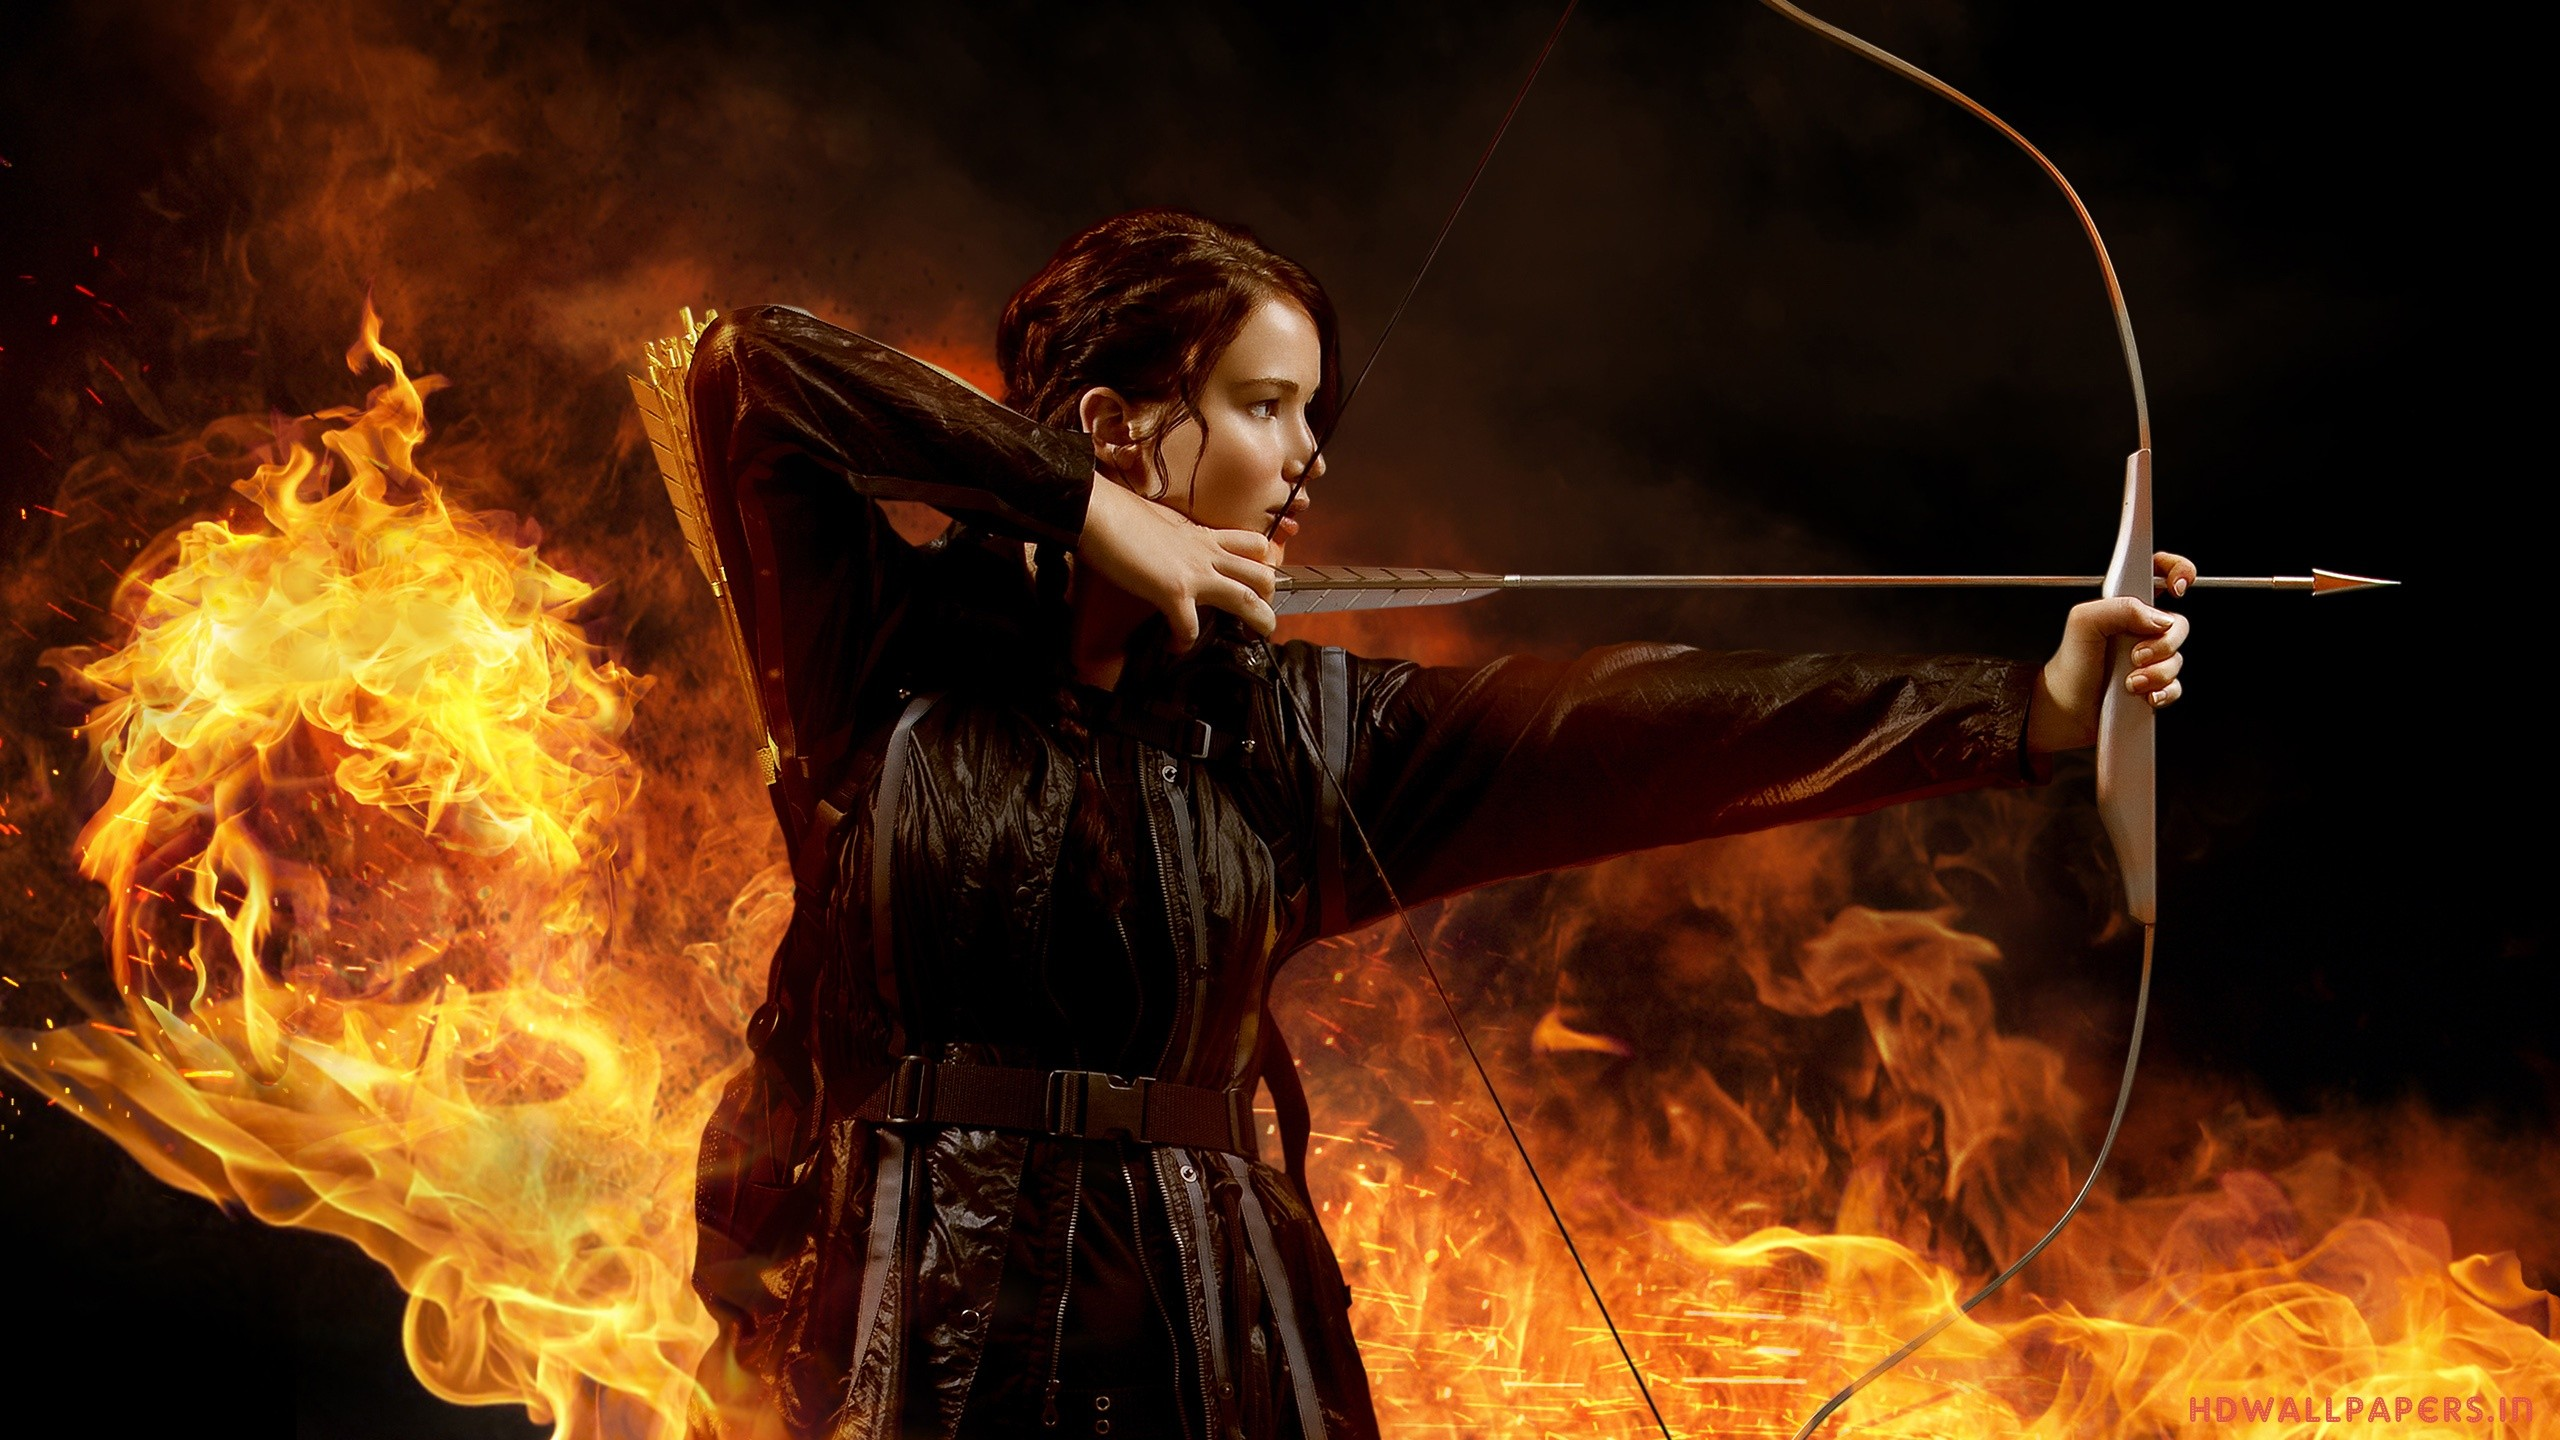 The hunger games full hd wallpaper and background image movie the hunger games katniss everdeen jennifer lawrence fire arrow bow wallpaper voltagebd Choice Image